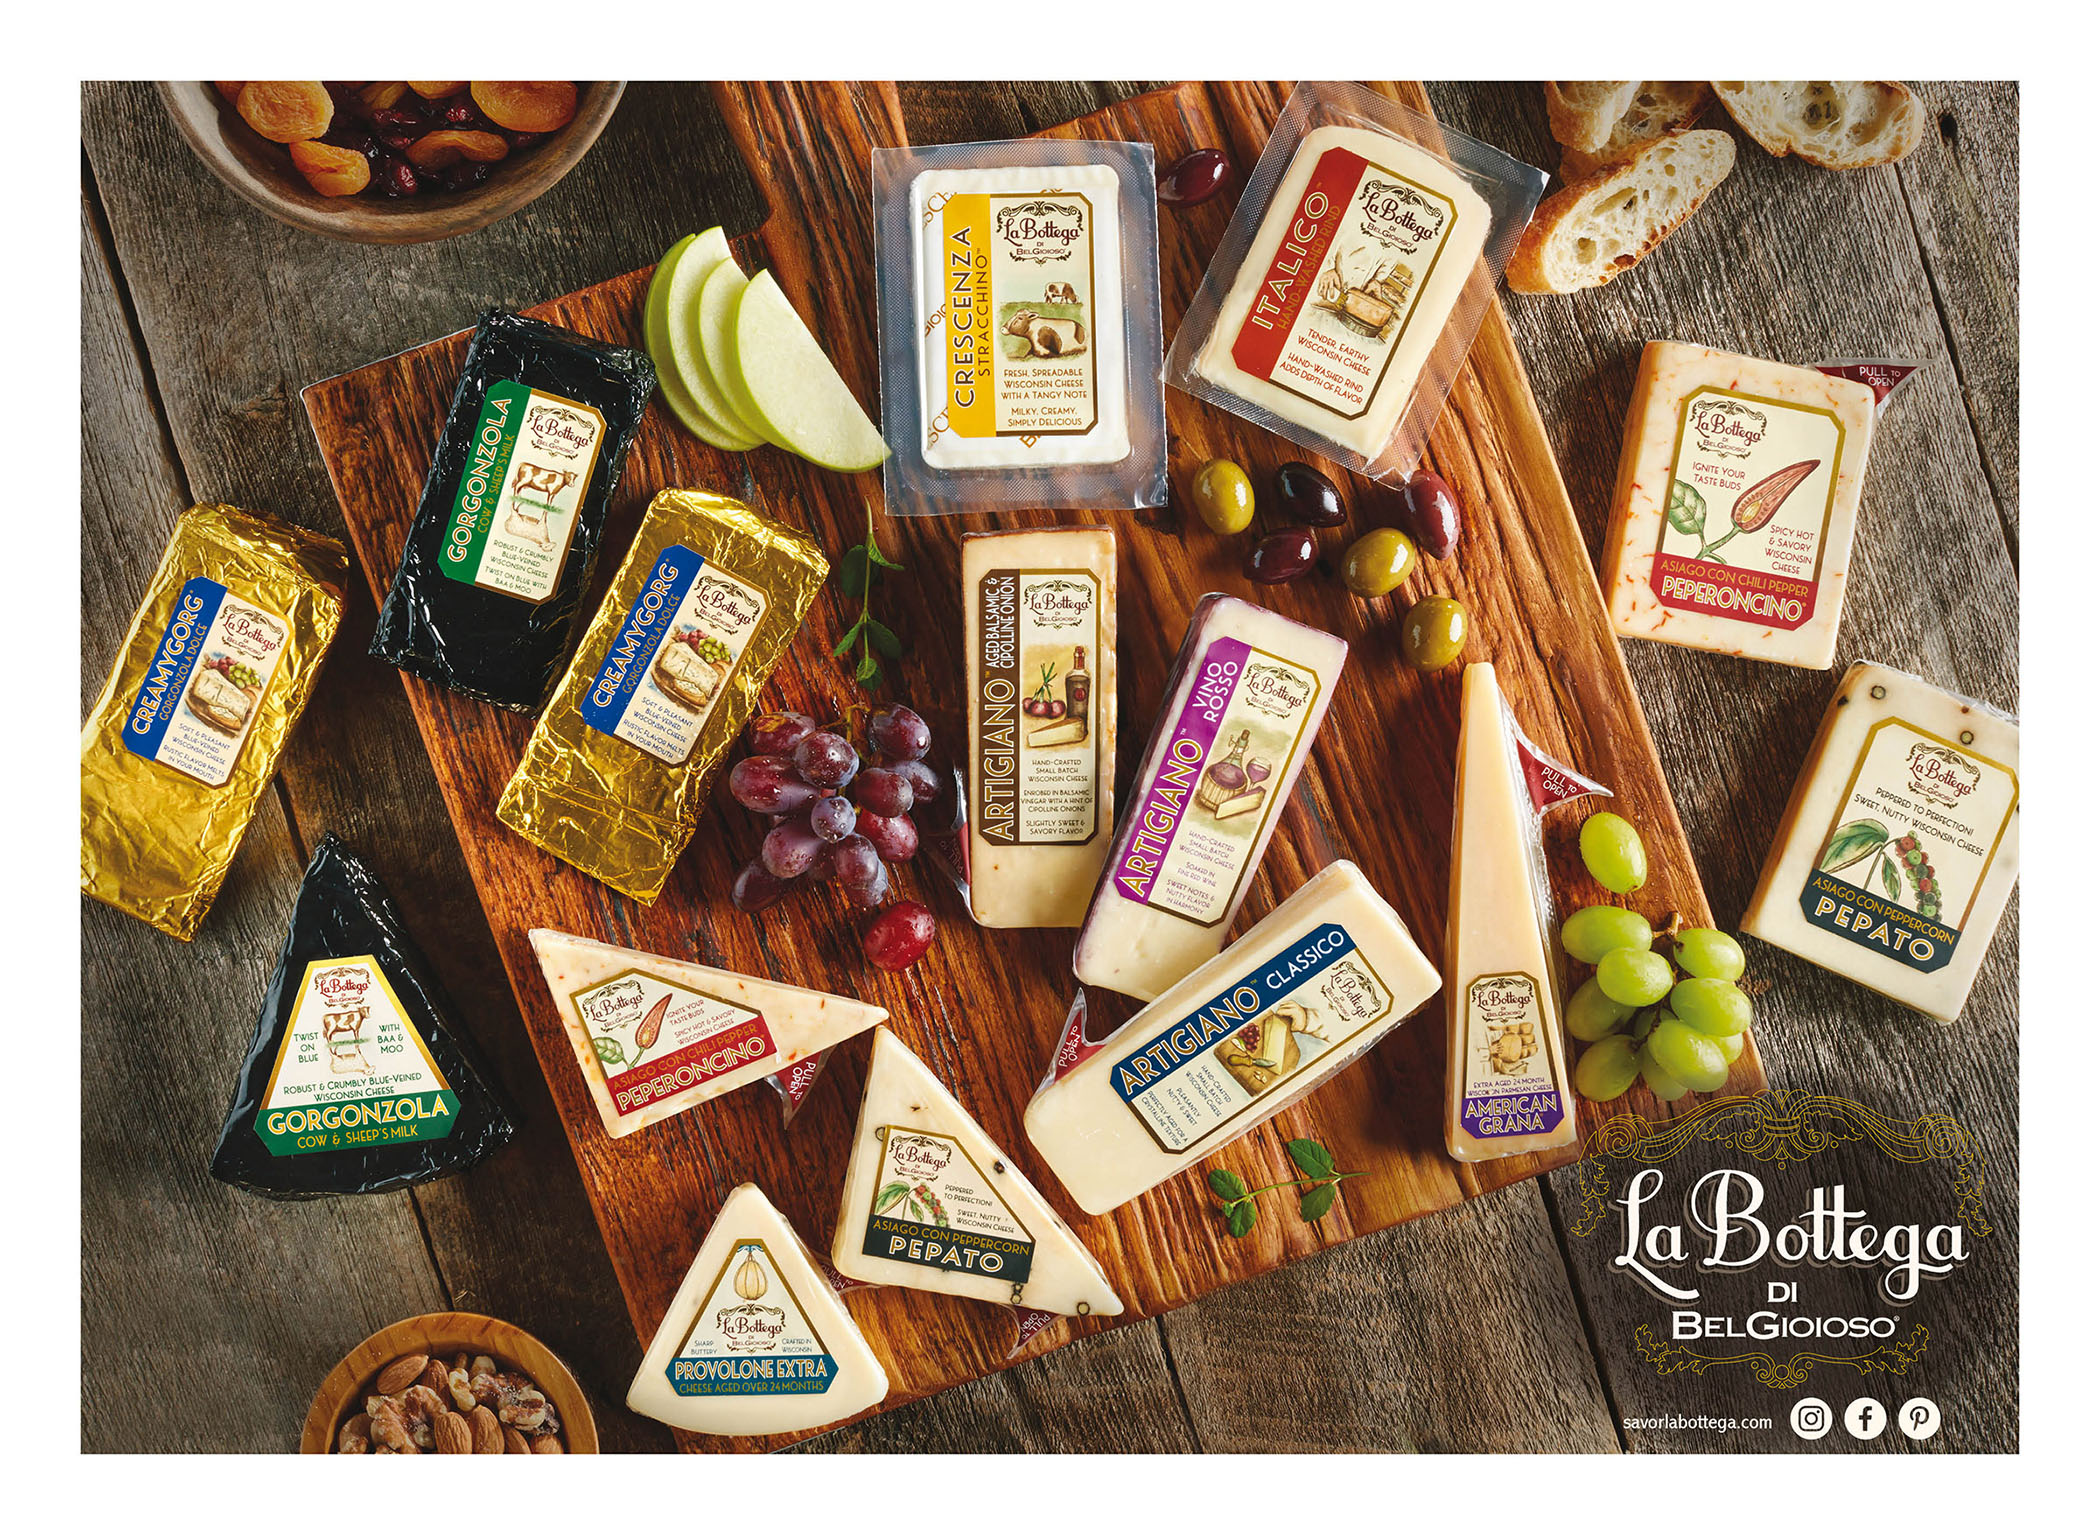 The La Bottega di BelGioioso family of cheeses